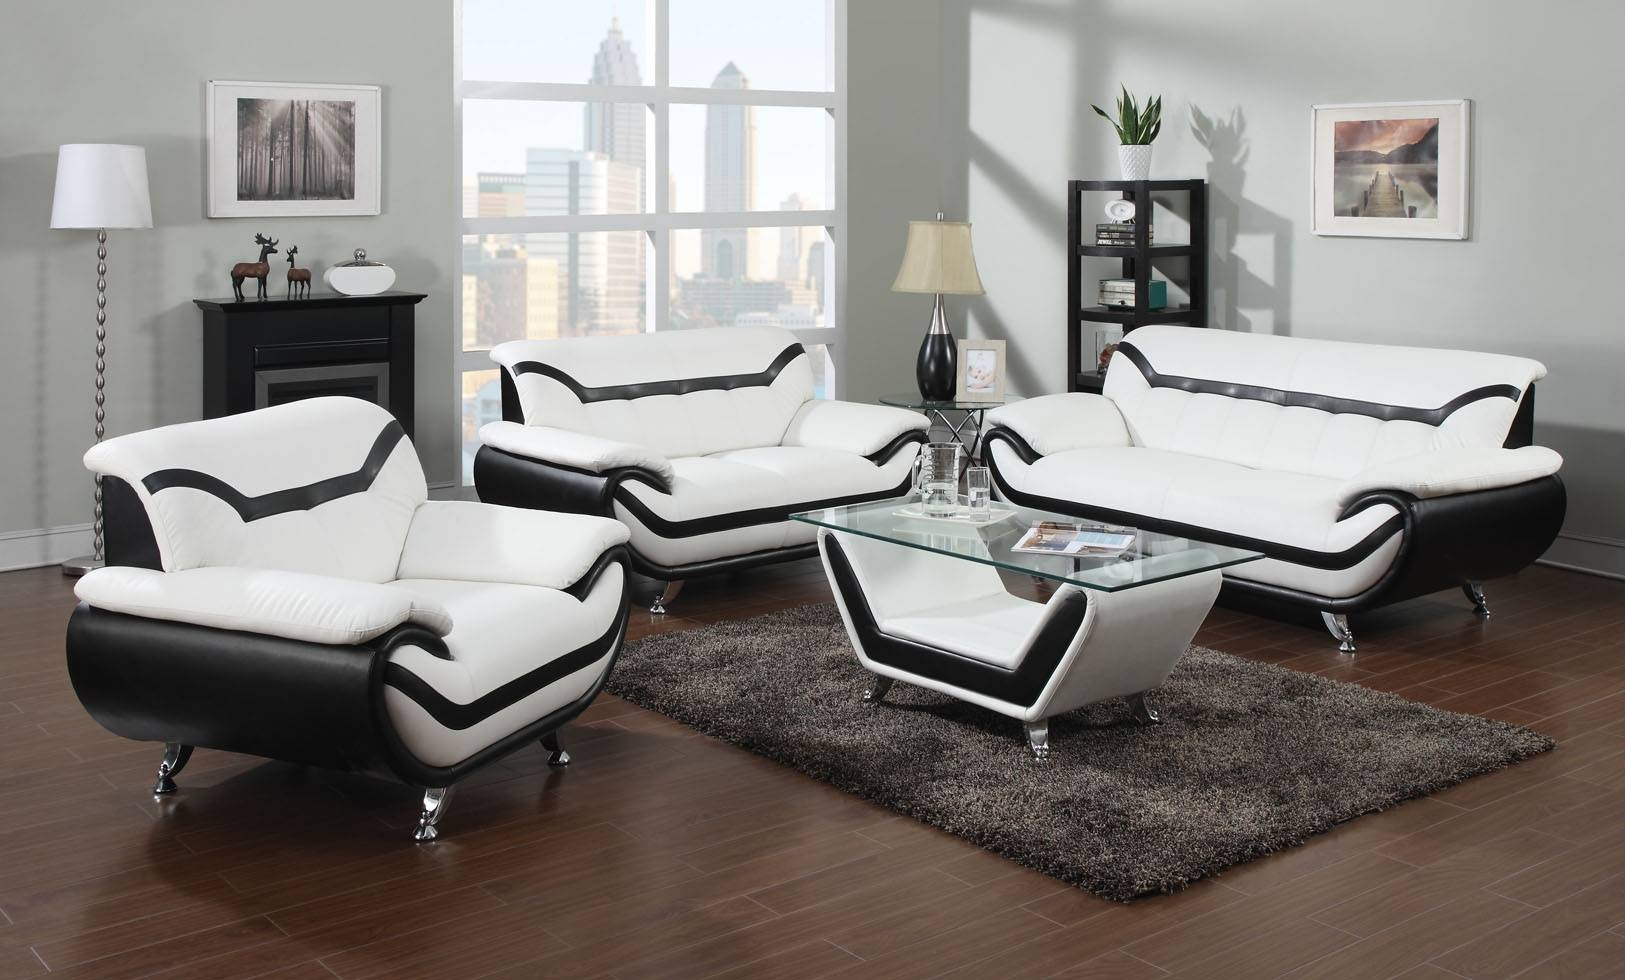 Black And White Leather Sofa Set 36 With Black And White Leather with regard to Black and White Leather Sofas (Image 5 of 15)